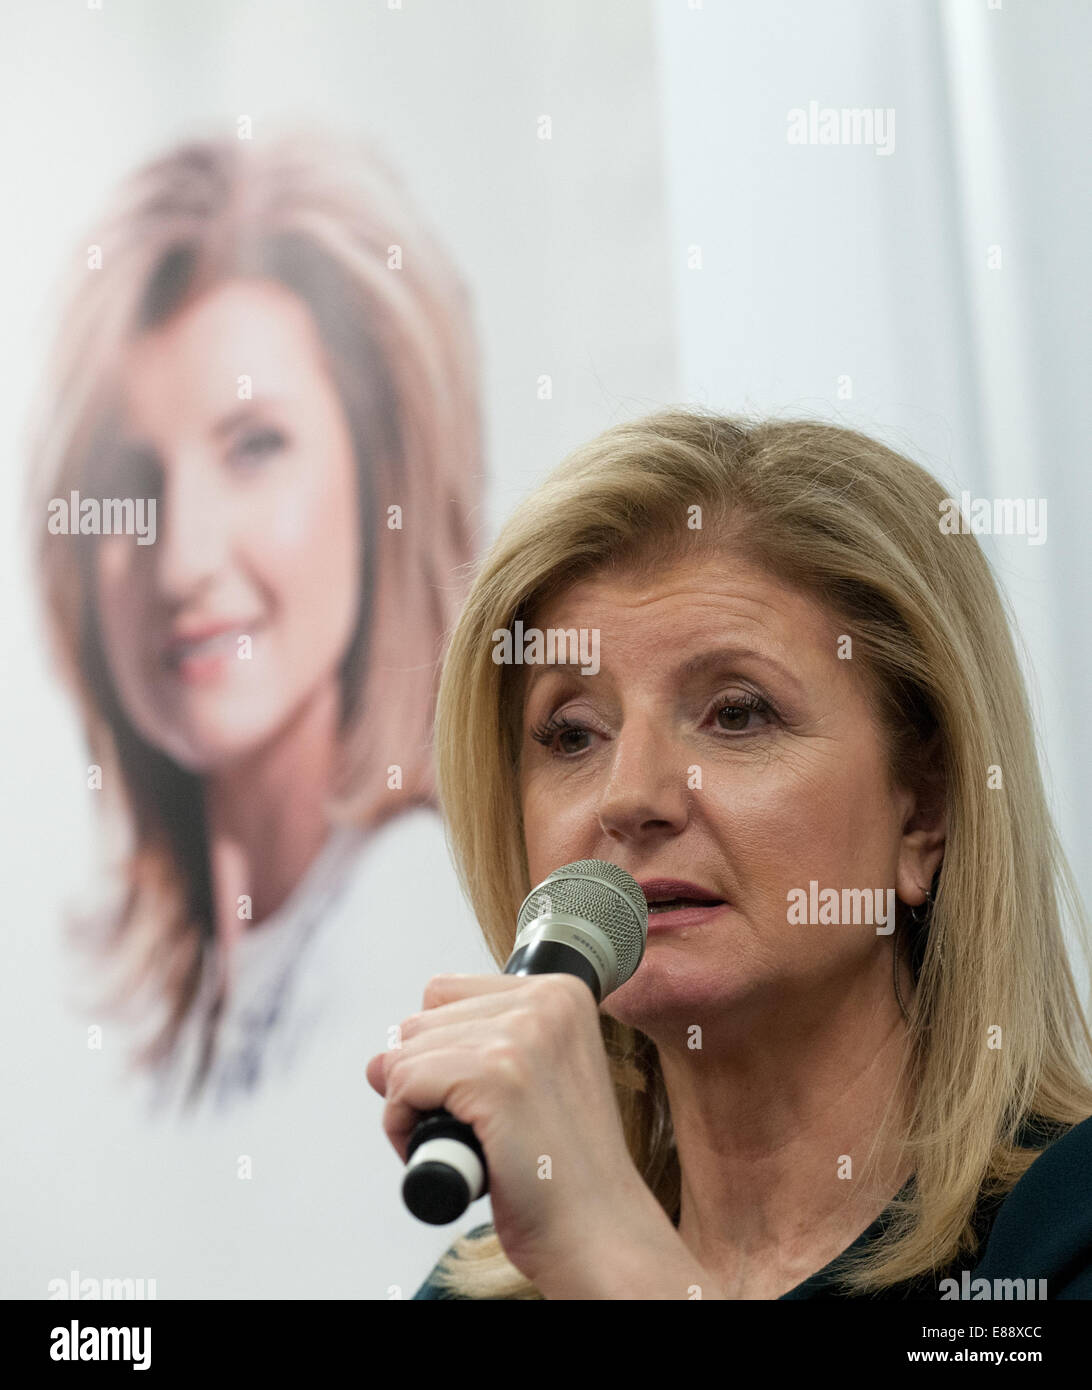 Berlin, Germany. 24th Sep, 2014. Author Arianna Huffington speaks about her new book 'Thrive: The Third Metric - Stock Image